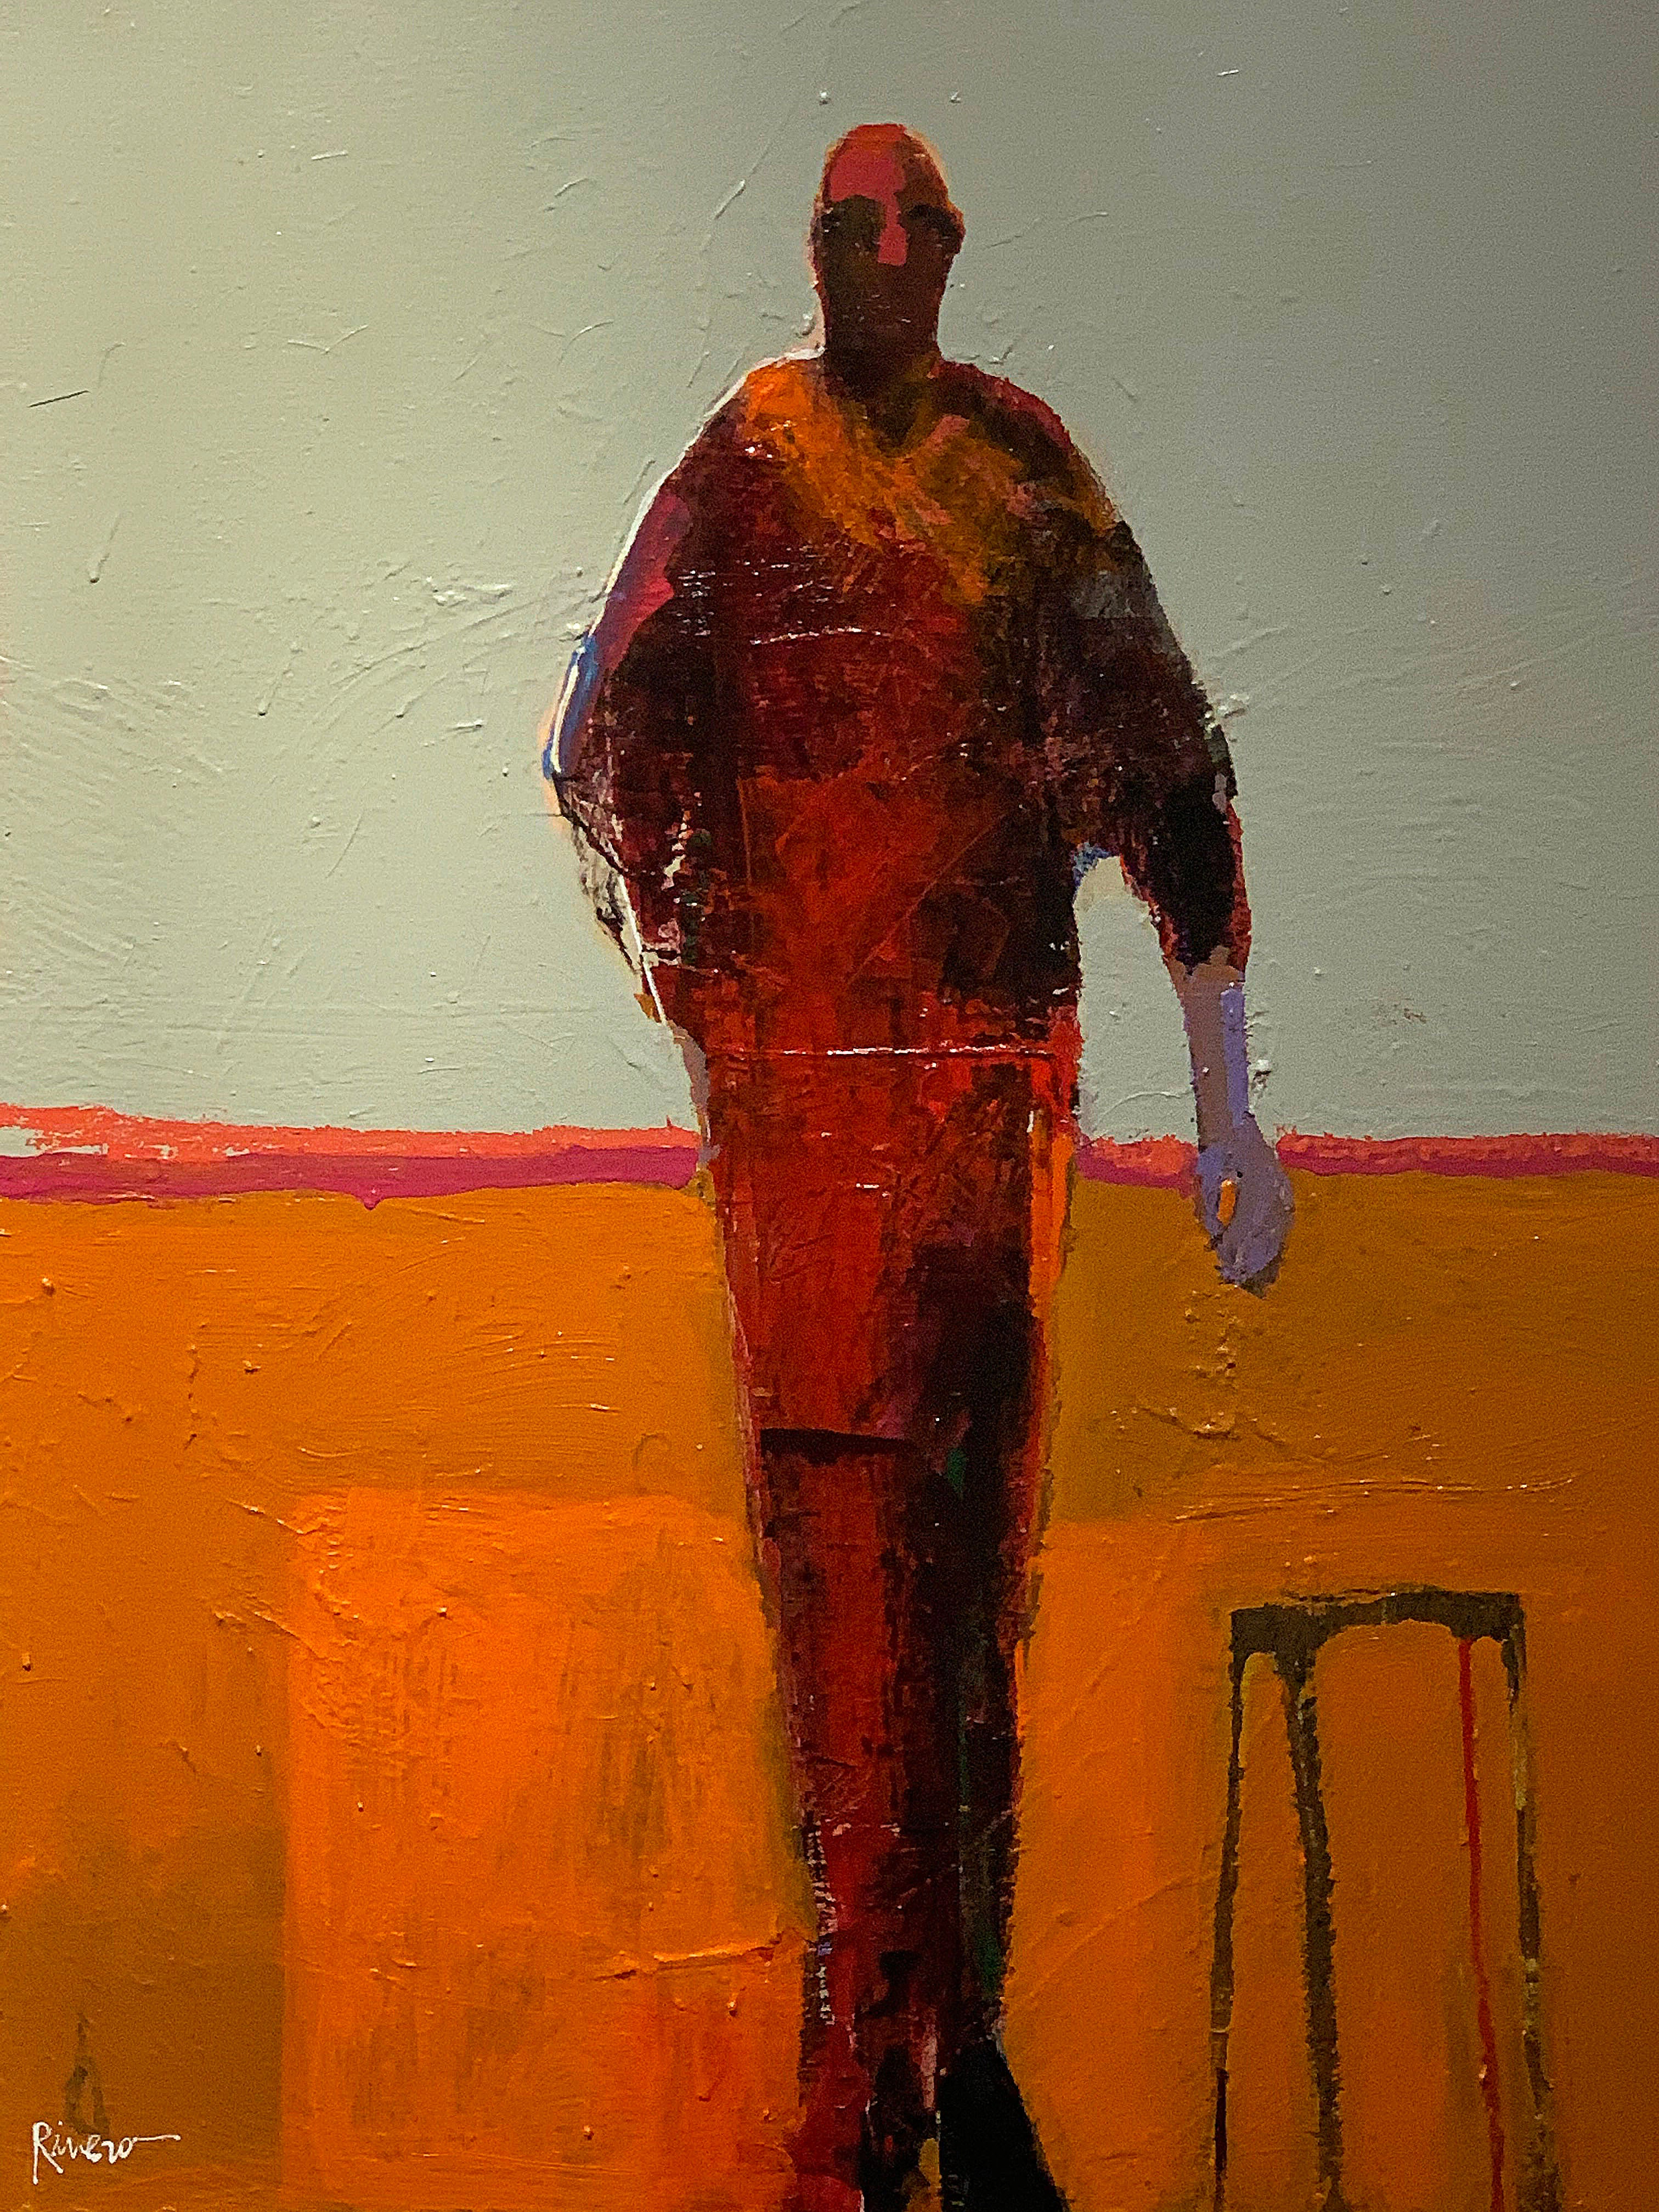 Personaje with Stool, standing figurative painting, orange and taupe